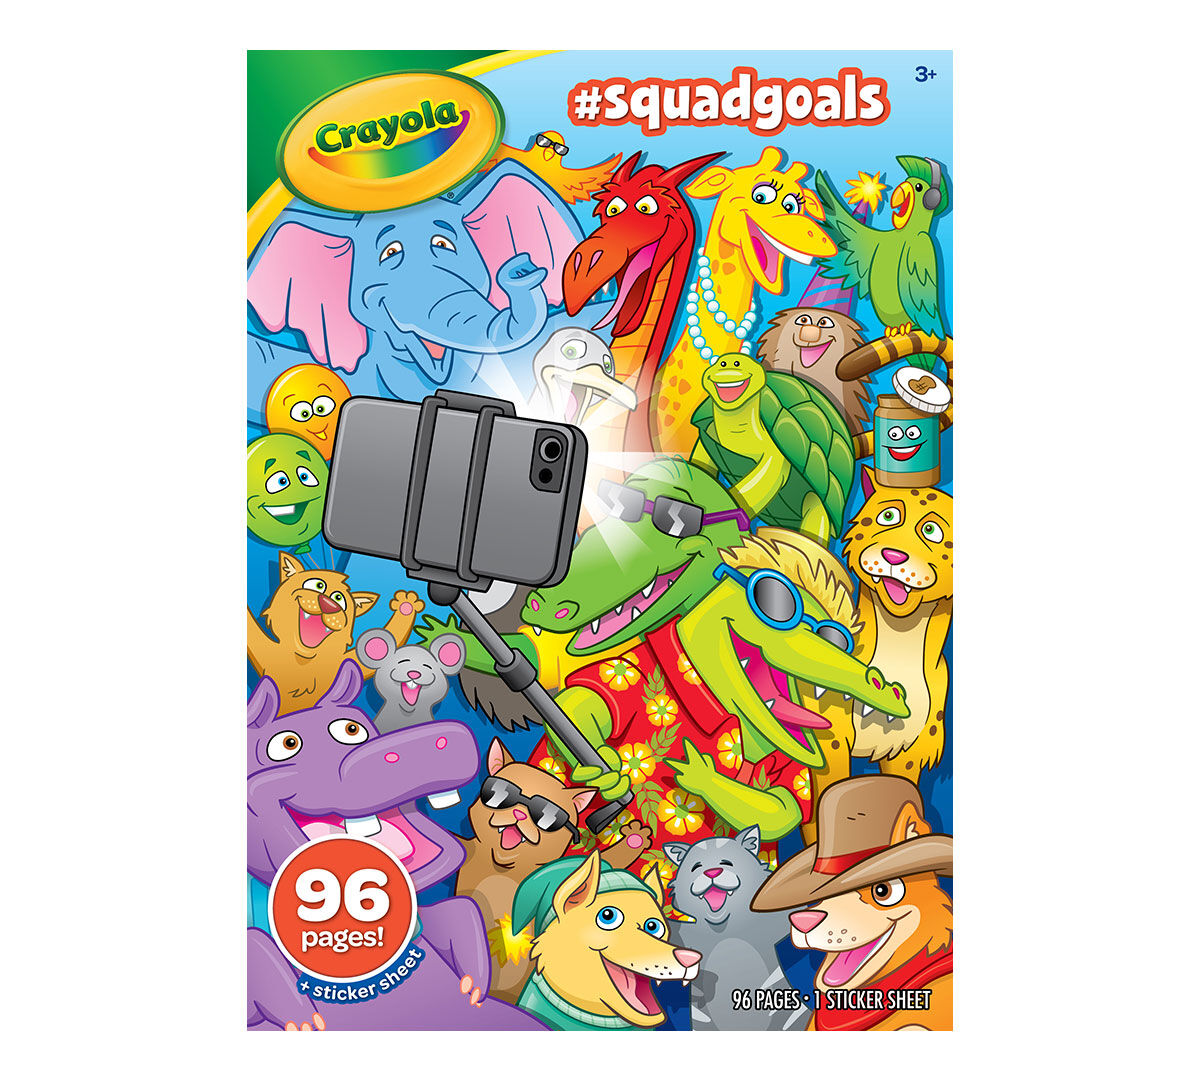 <p>What are your favorite things to do with your besties? Explore the funactivities and adventures that friends of all shapes and sizes can dotogether in the Crayola Squad Goals Coloring Book. There are 96 pages oftrendy line art depicting friends accomplishing their squad goals. Alsoincludes a sticker sheet. Great for kids ages 3 and up!</p>